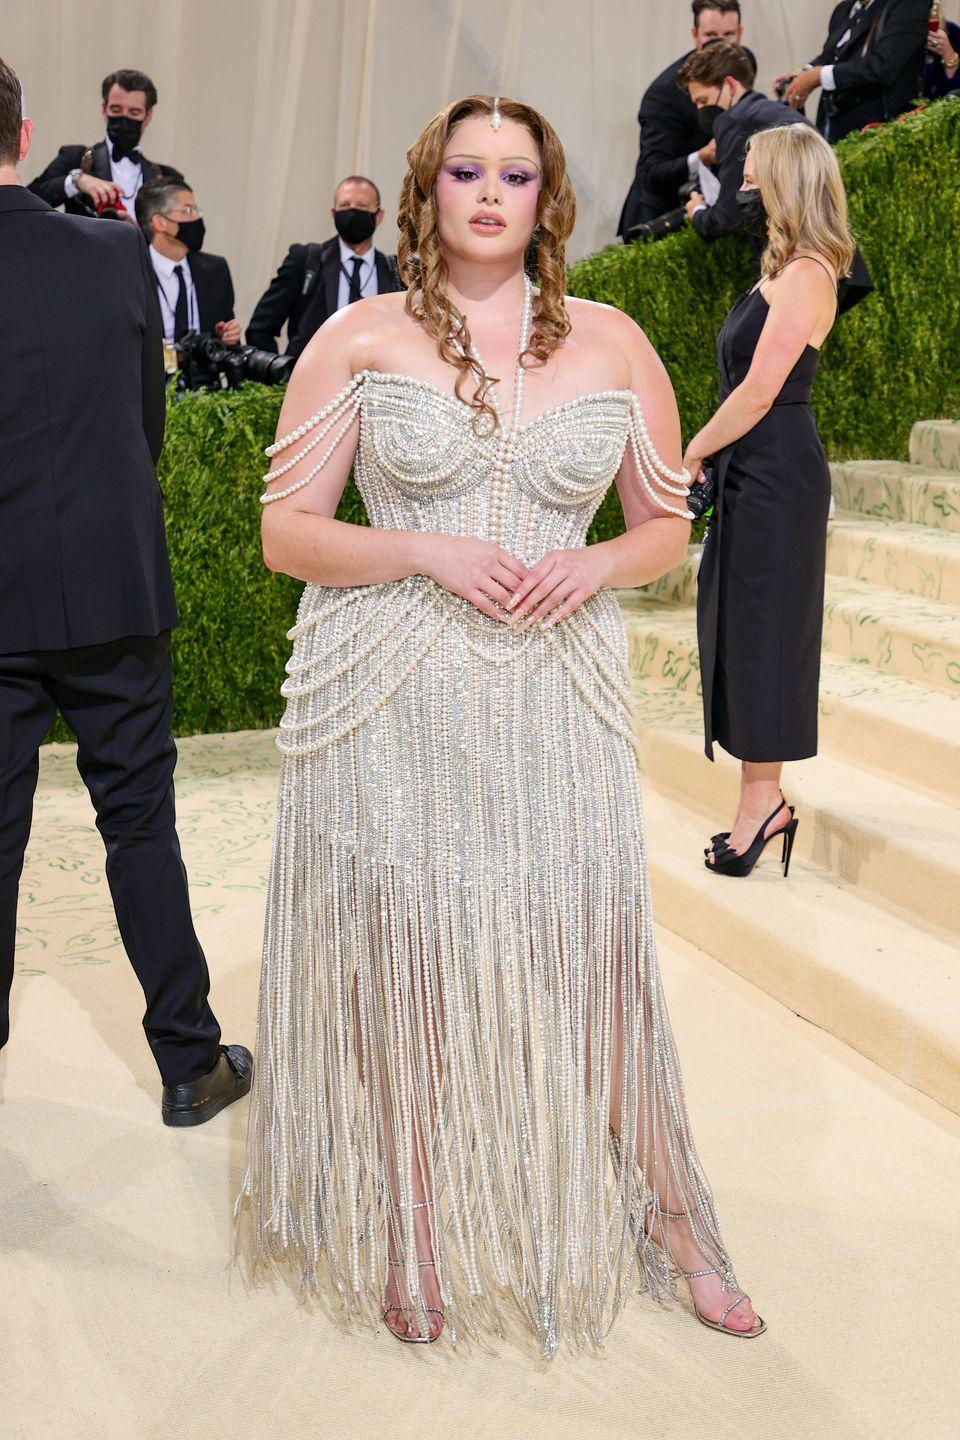 <p>The <em>Euphoria</em> star looked like luxury defined as she positively dripped pearls and sparkle on the red carpet, in a gown that made her seem like some sort of sea goddess or modern-day Aphrodite rising from the waves. </p>